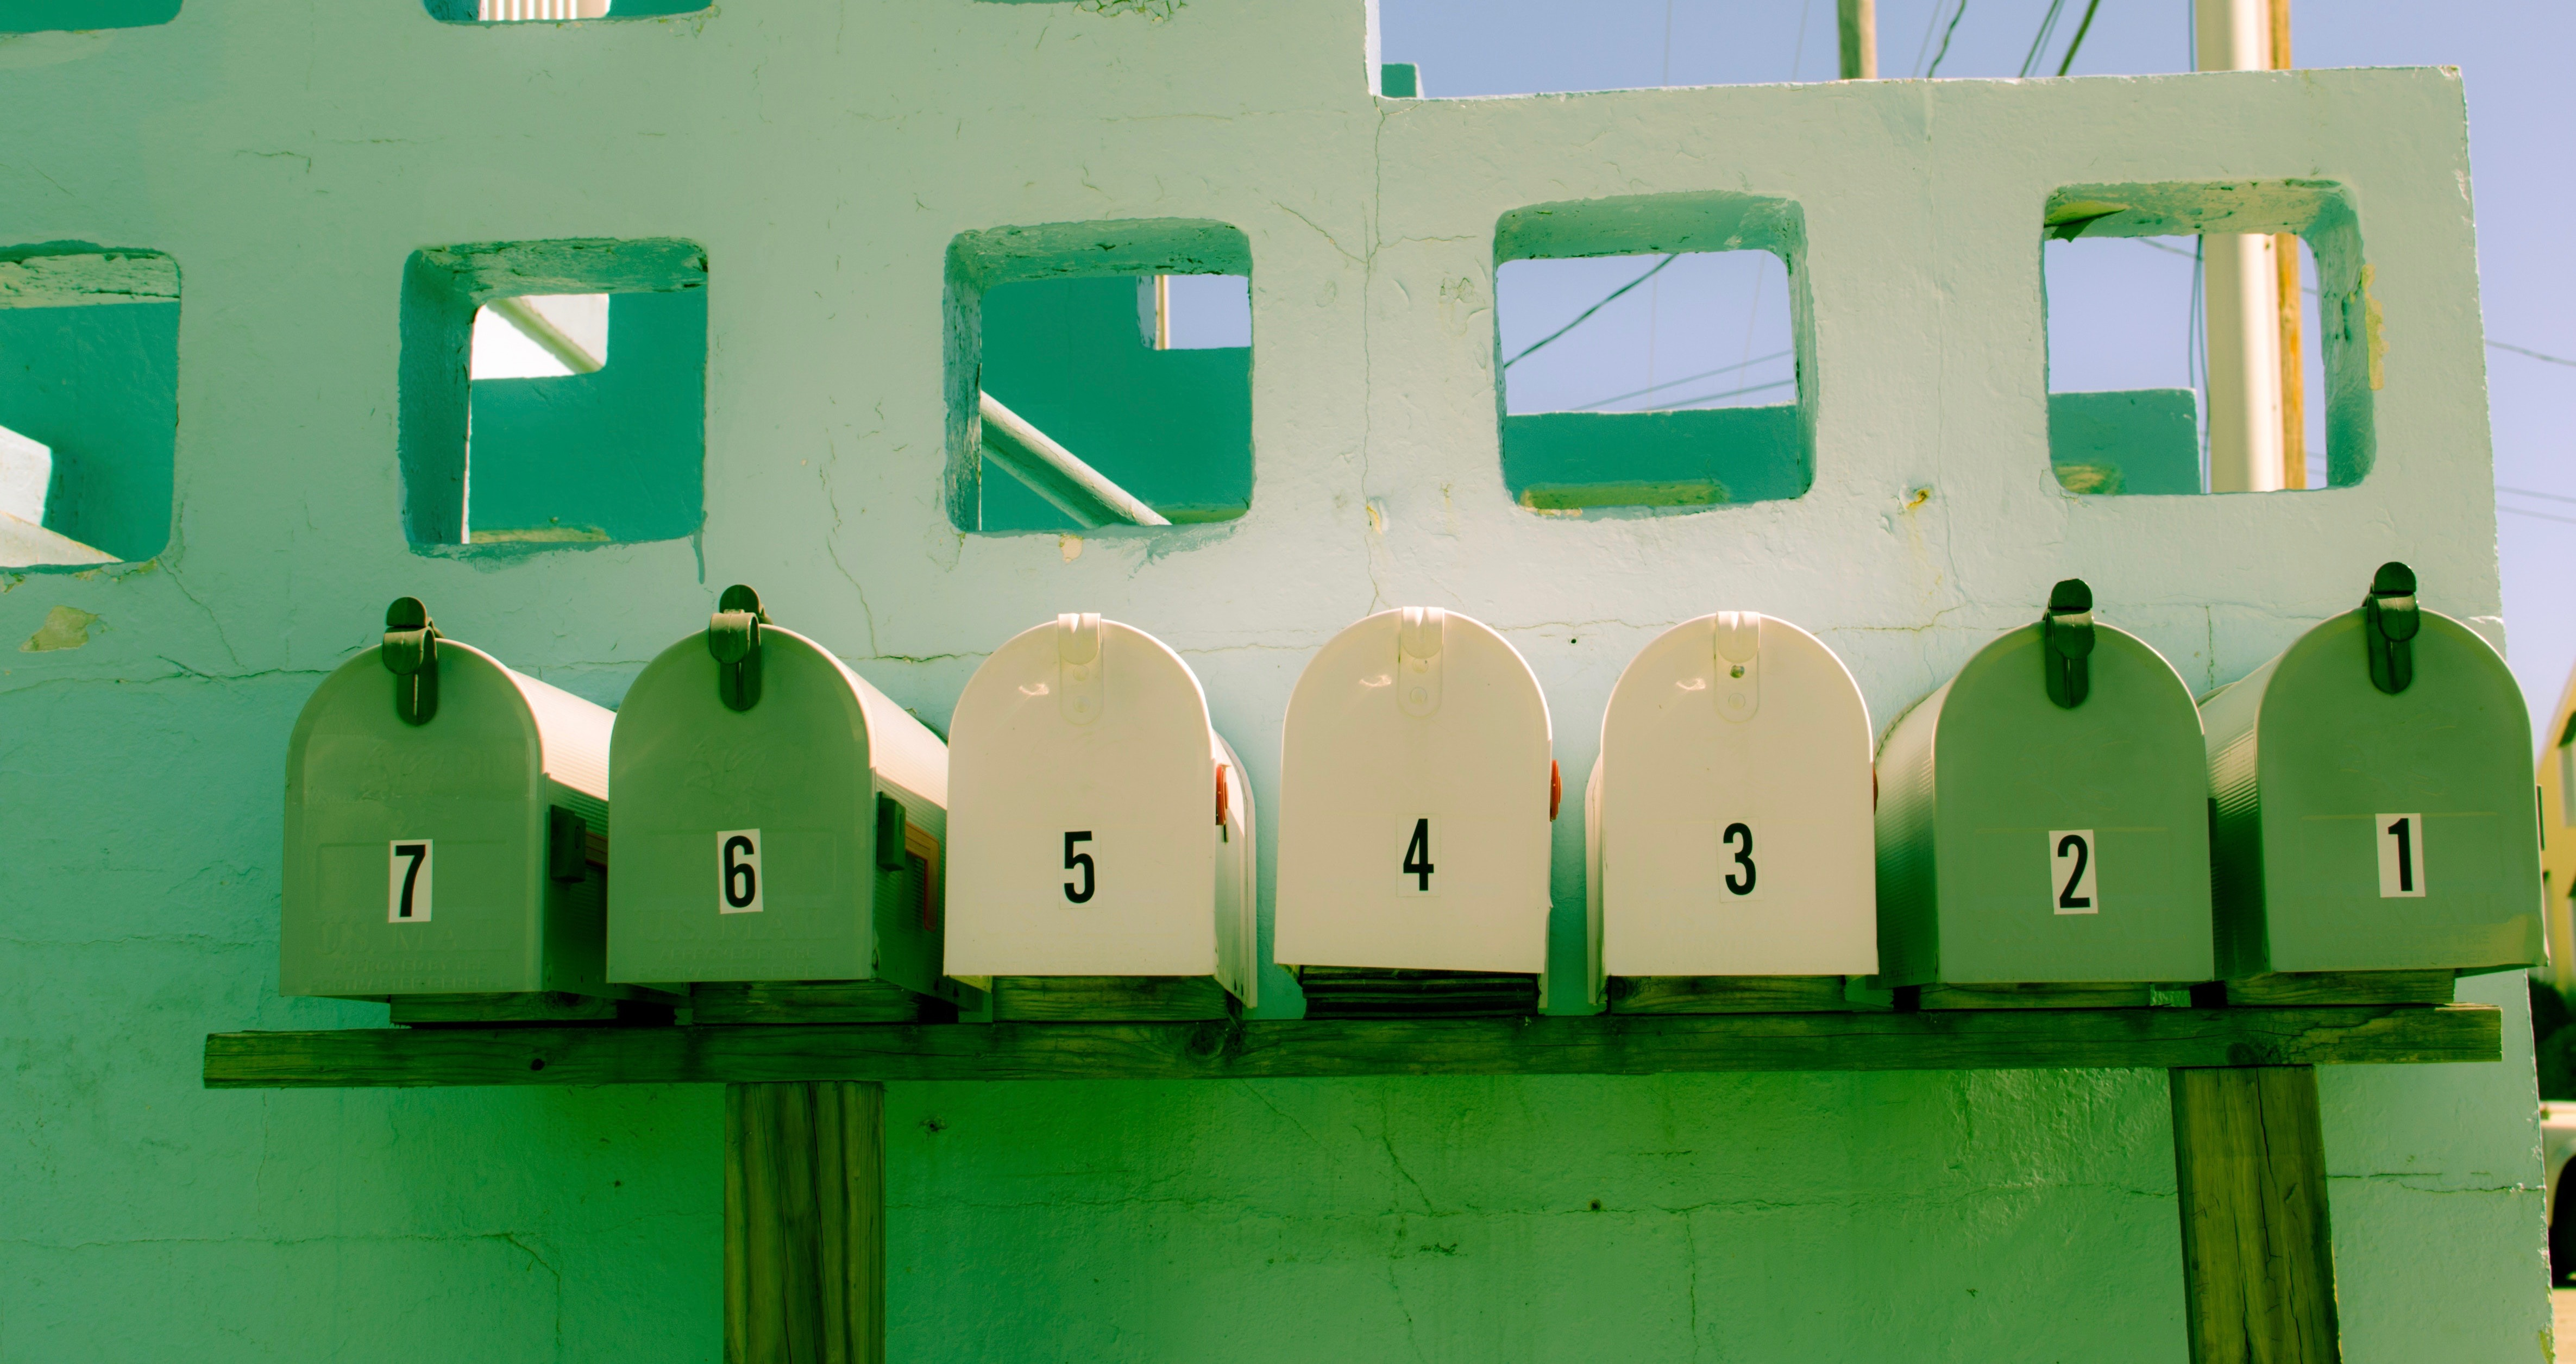 row of green letterboxes